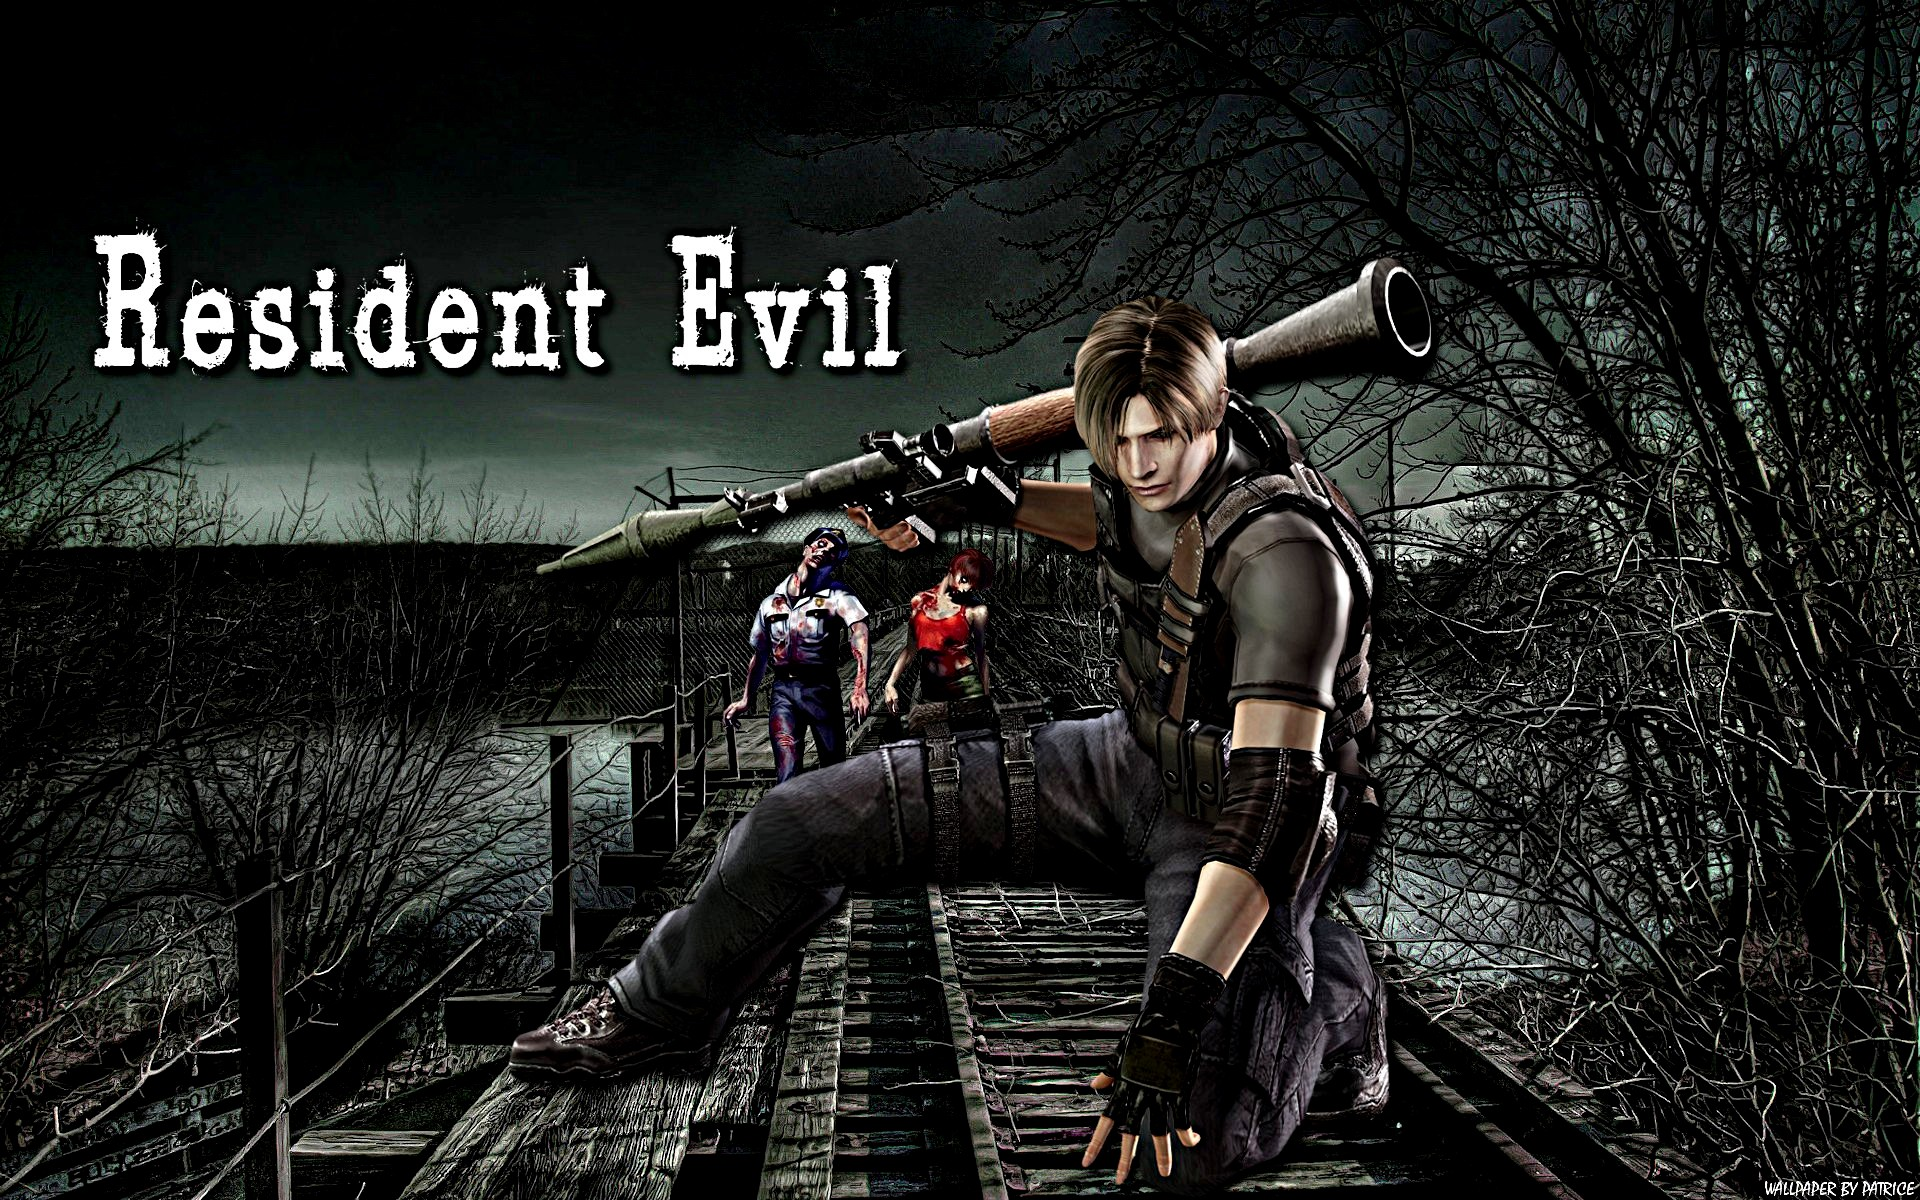 Resident Evil Wallpapers HD - WallpaperSafari